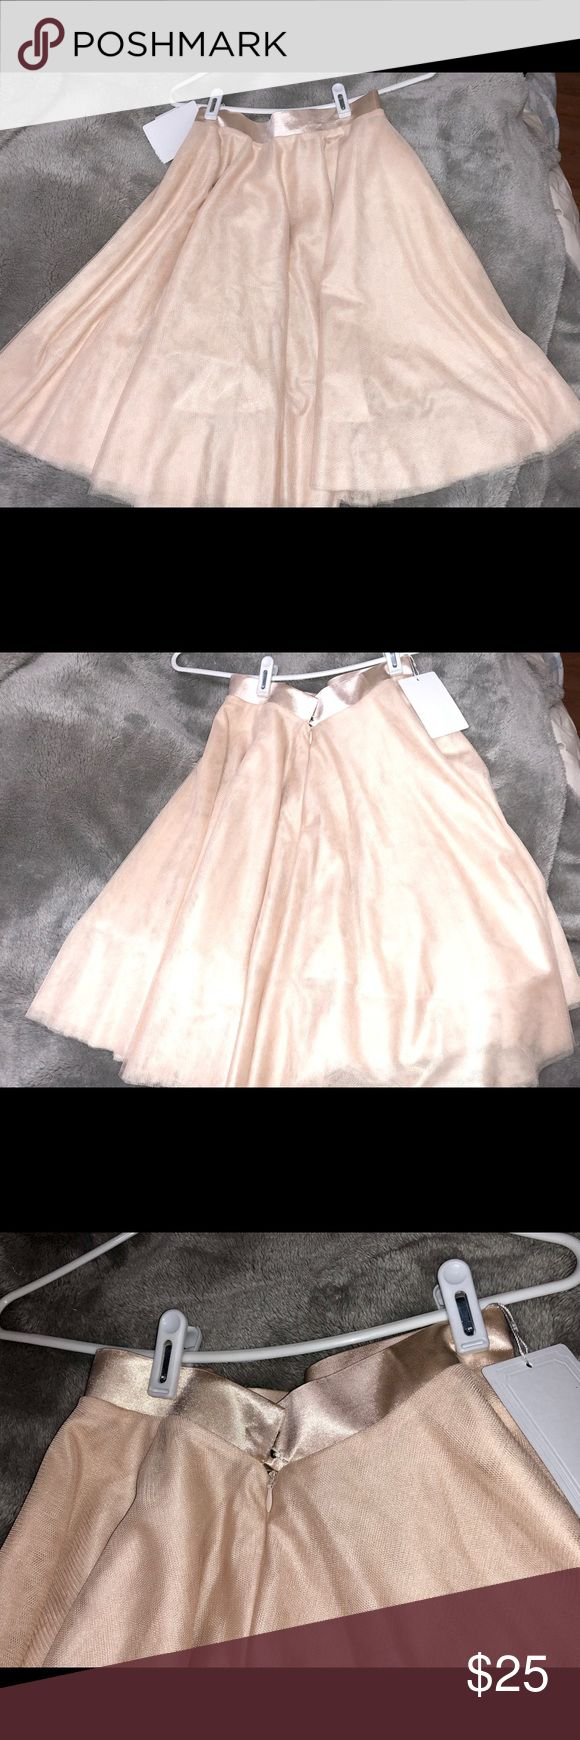 Champagne Tutu Skirt US Size 0/2 NWT I'm selling a never worn above-the-knee length champagne color tutu skirt with satin waist band. Although the tag says M, it's an Asian M and actually runs fairly small. So if you're considering buying you should be a TRUE size US 0 or 2 or else this WON'T fit you! Zip + hook & eye closure. Super cute, with several layers of tulle and fully lined so you won't need a slip. This isn't a poofy tutu so if you want a very full effect, you'll need to pair this…